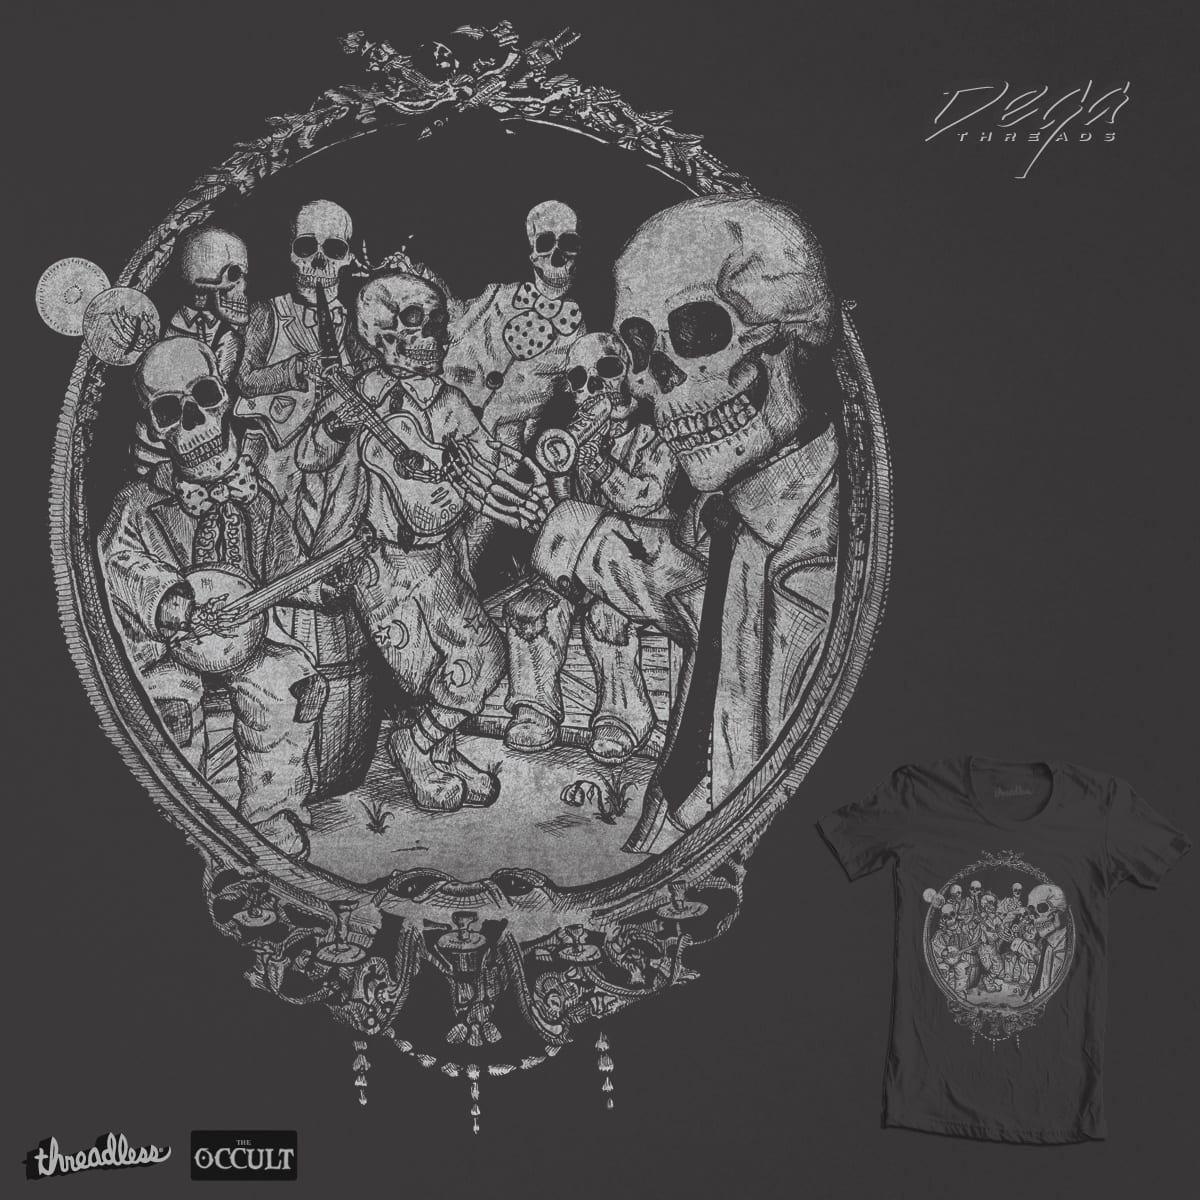 Occult Paranormal: Score An Occult Classic By DegaStudios On Threadless